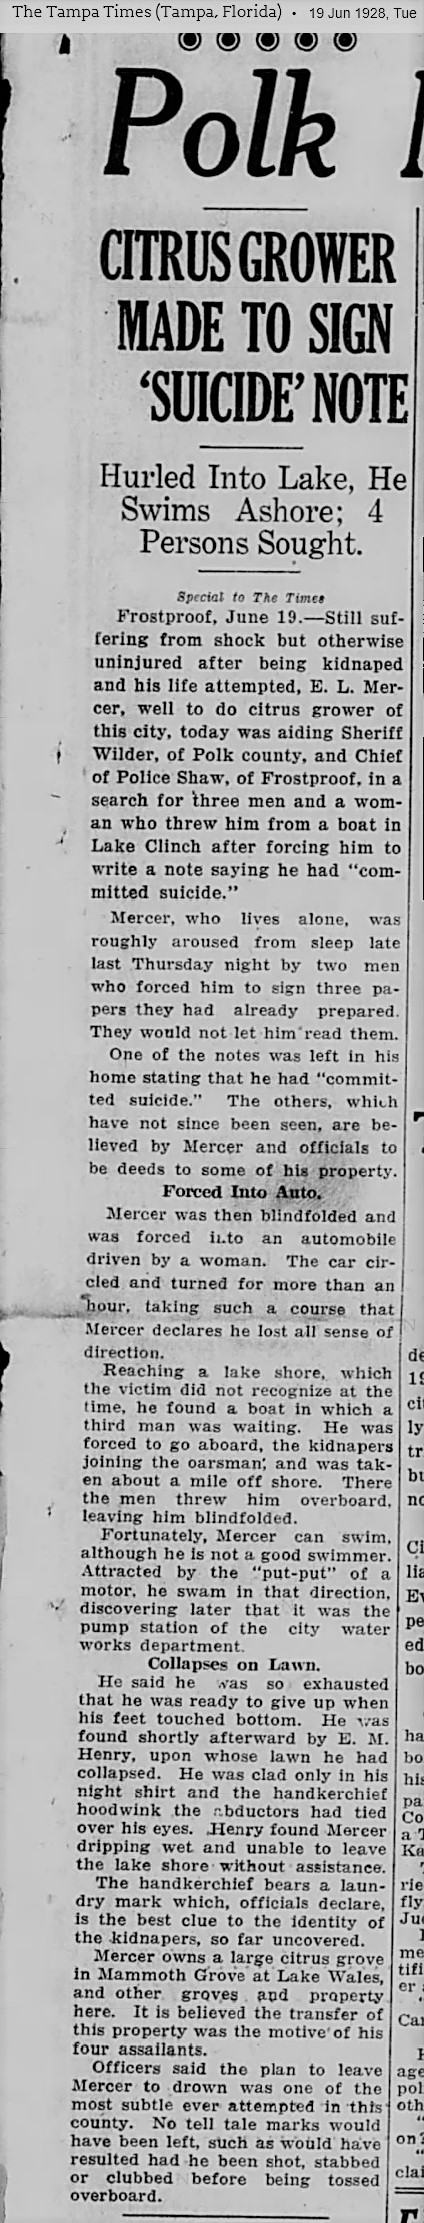 June 6, 1928 Tampa Tribune reports Frostproof, FL police chief Bruner Shaw investigating kidnapping of E.L. Mercer